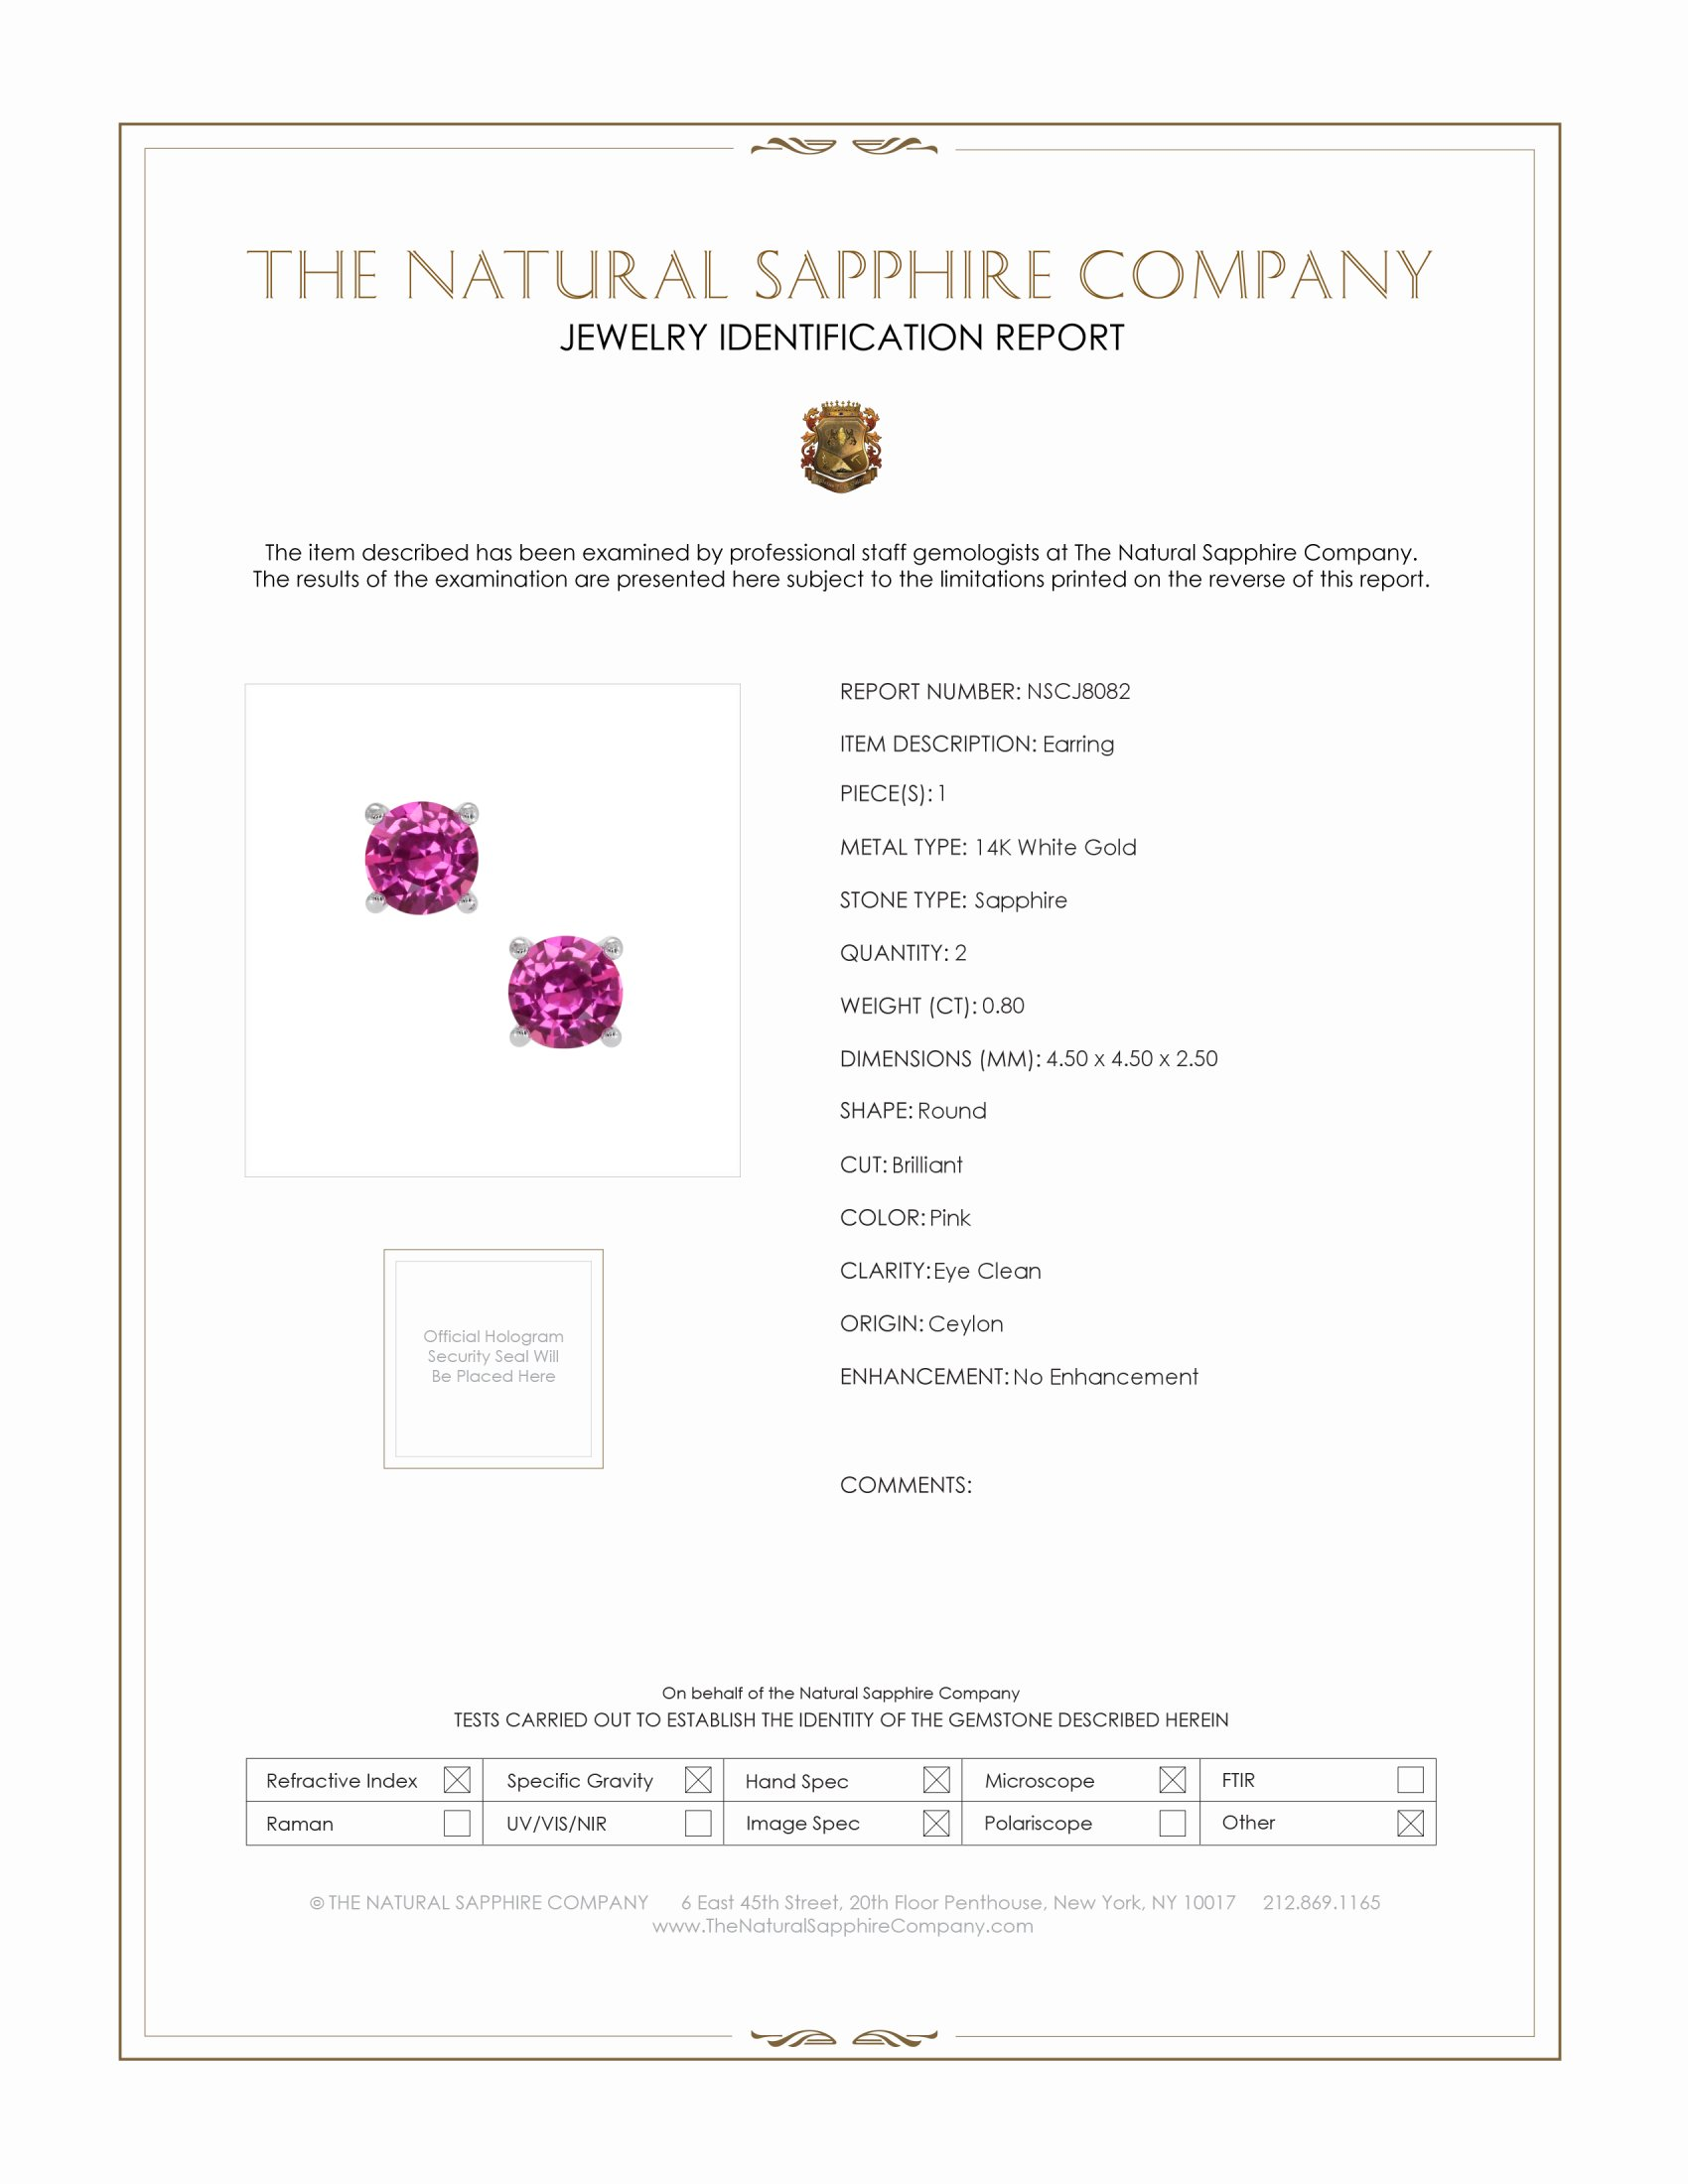 0.80ct Pink Sapphire Earring Certification